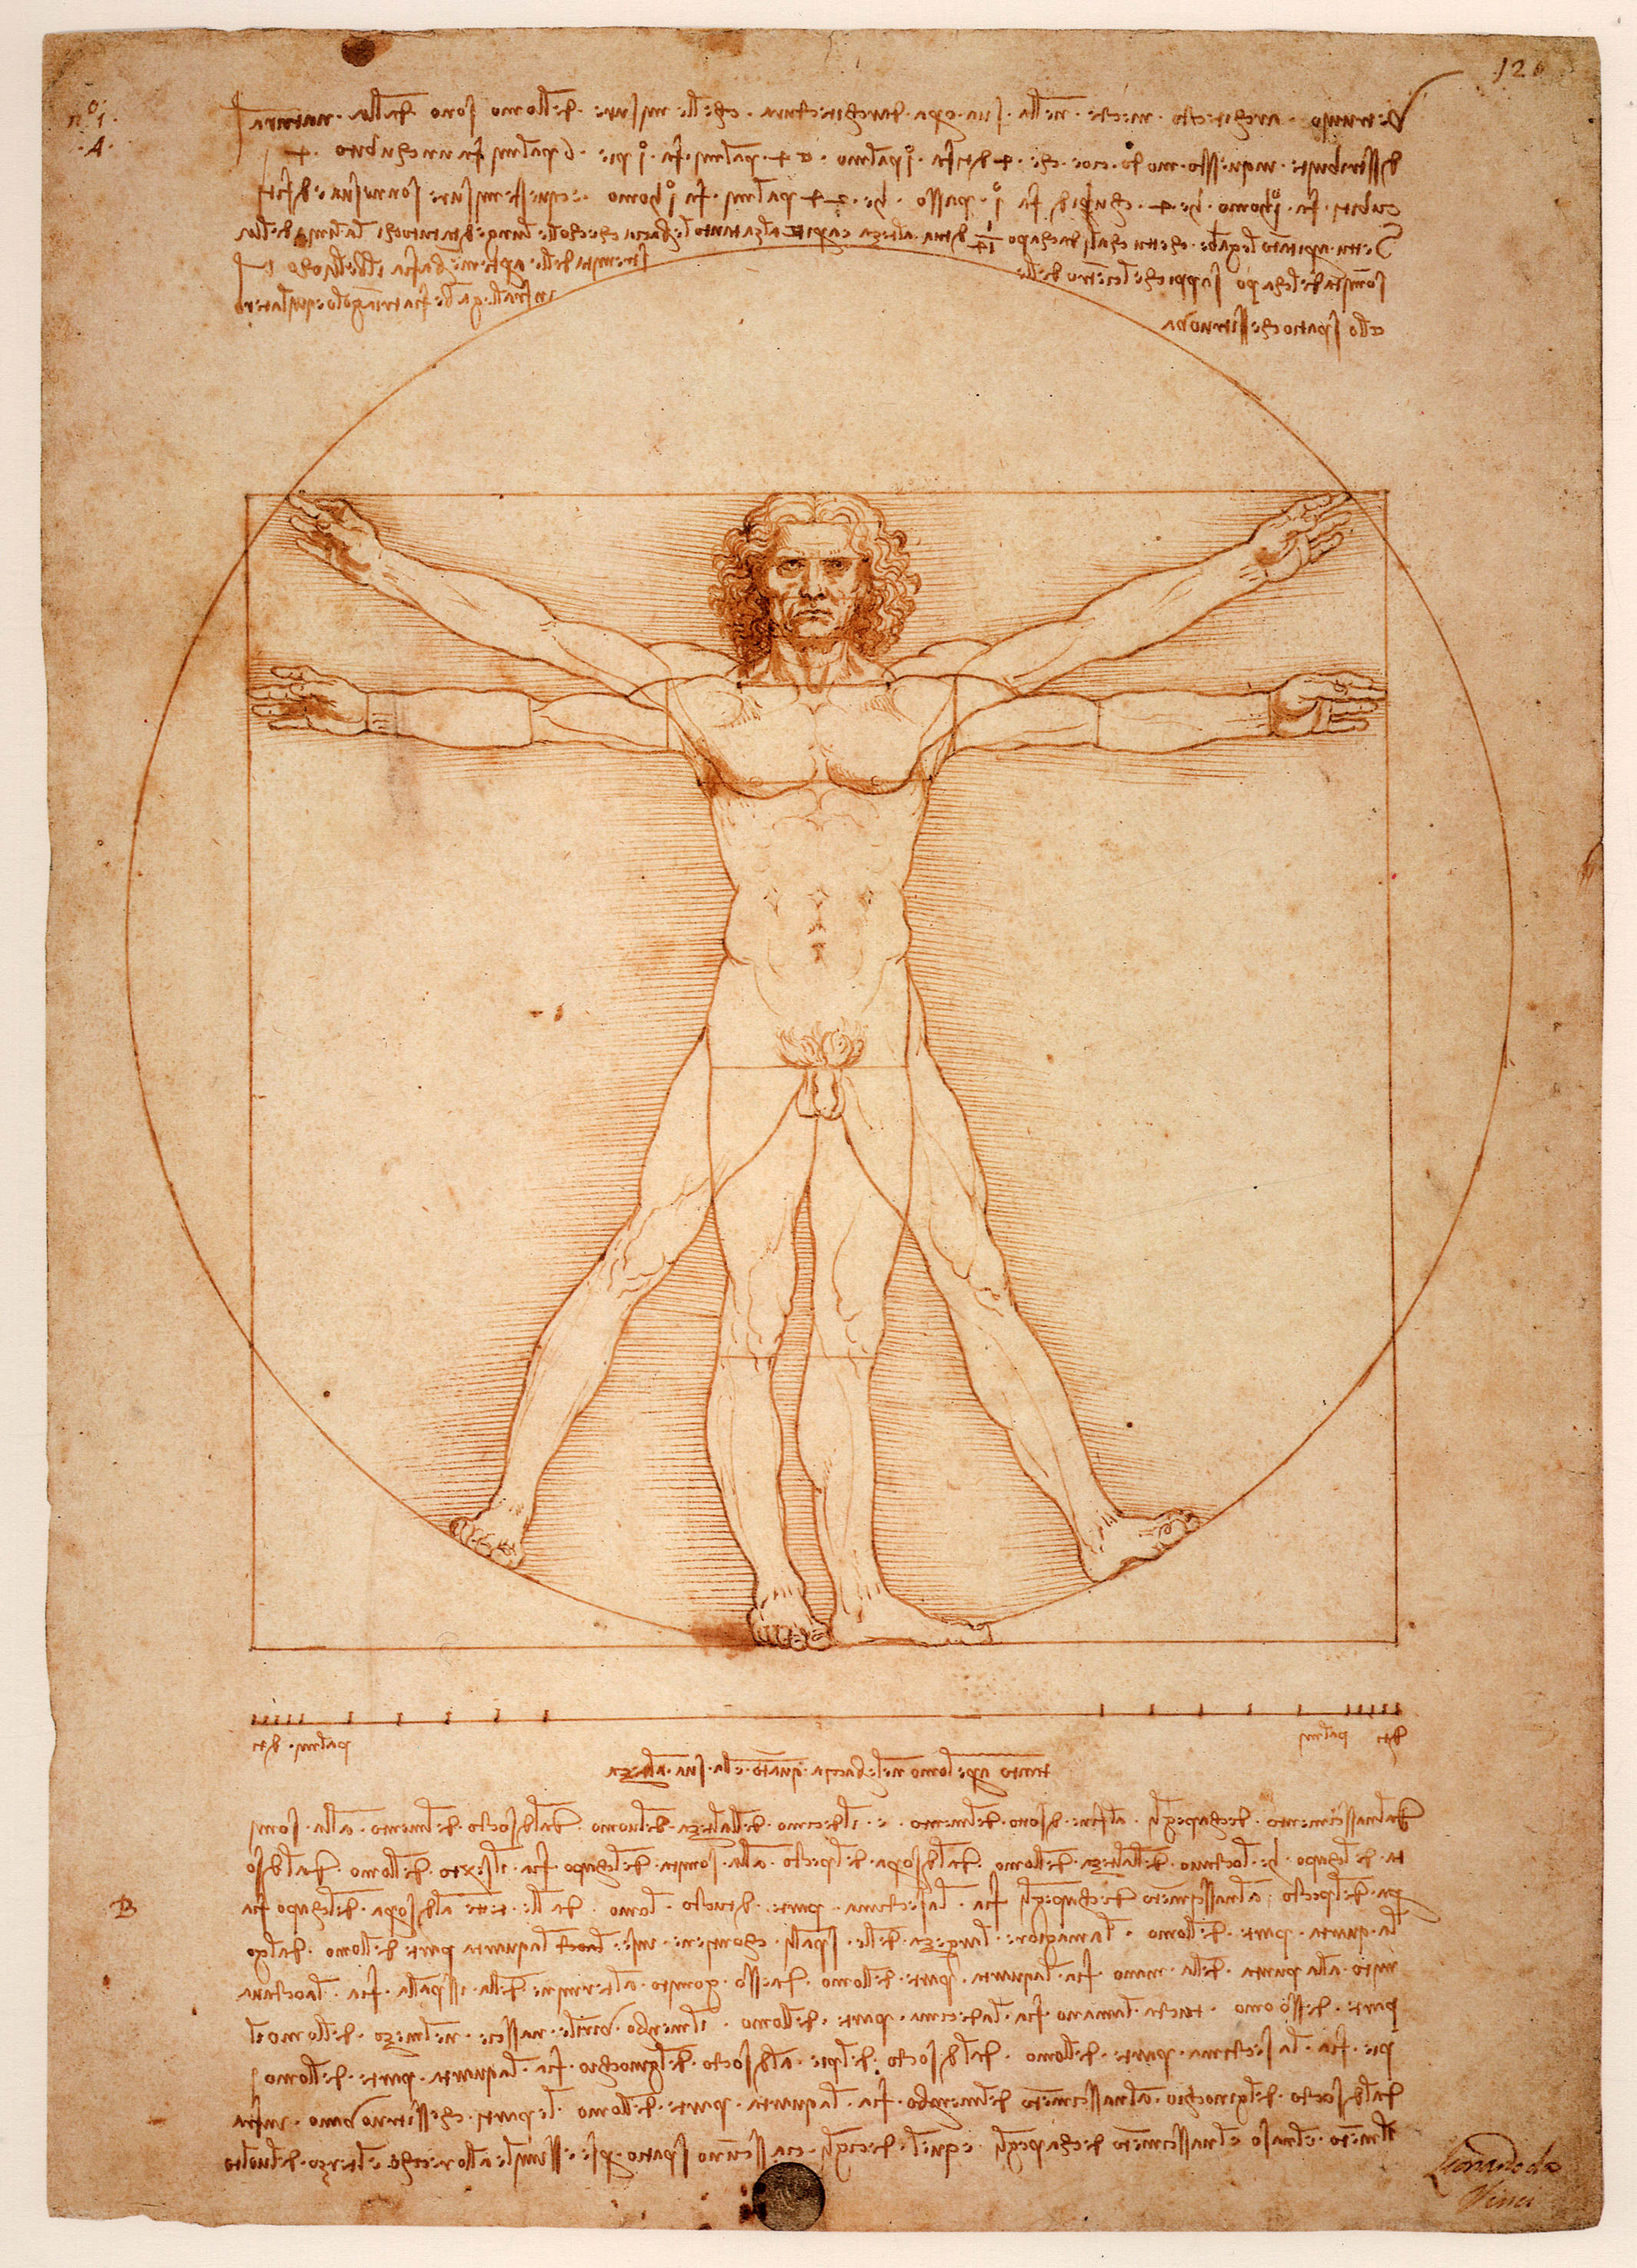 A pen drawing of a nude man with his arms extended standing within a square and a circle.